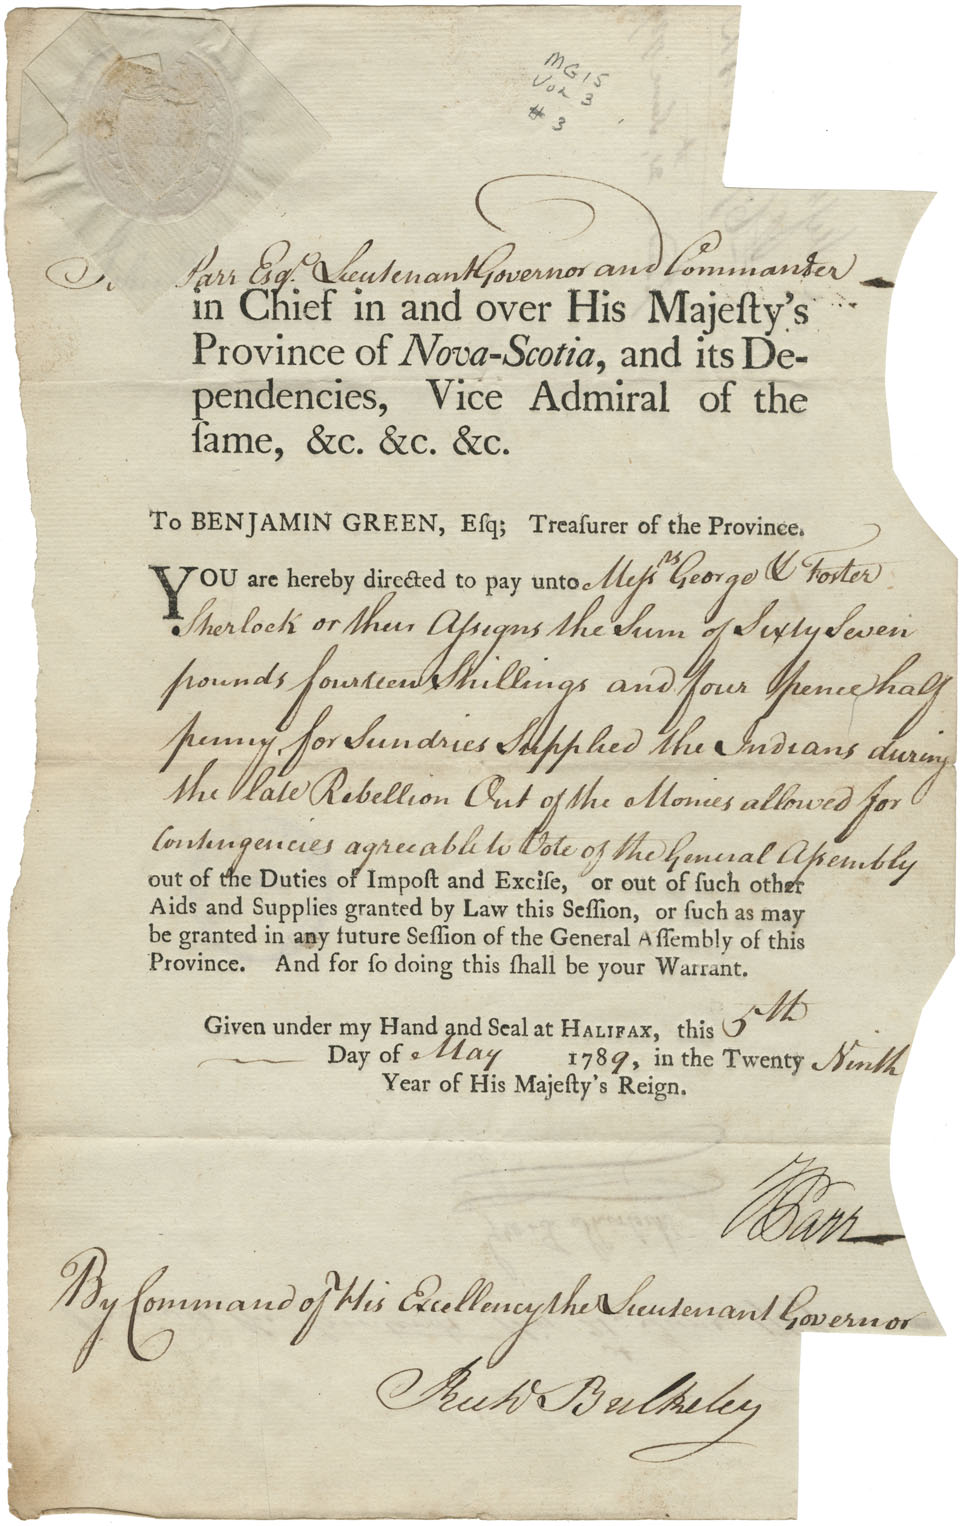 Directive from Lieutenant-Governor John Parr to Benjamin Green, Treasurer of the Province, for payment to George & Foster Sherlock for sundries supplied to the Mi'kmaq during the late rebellion.